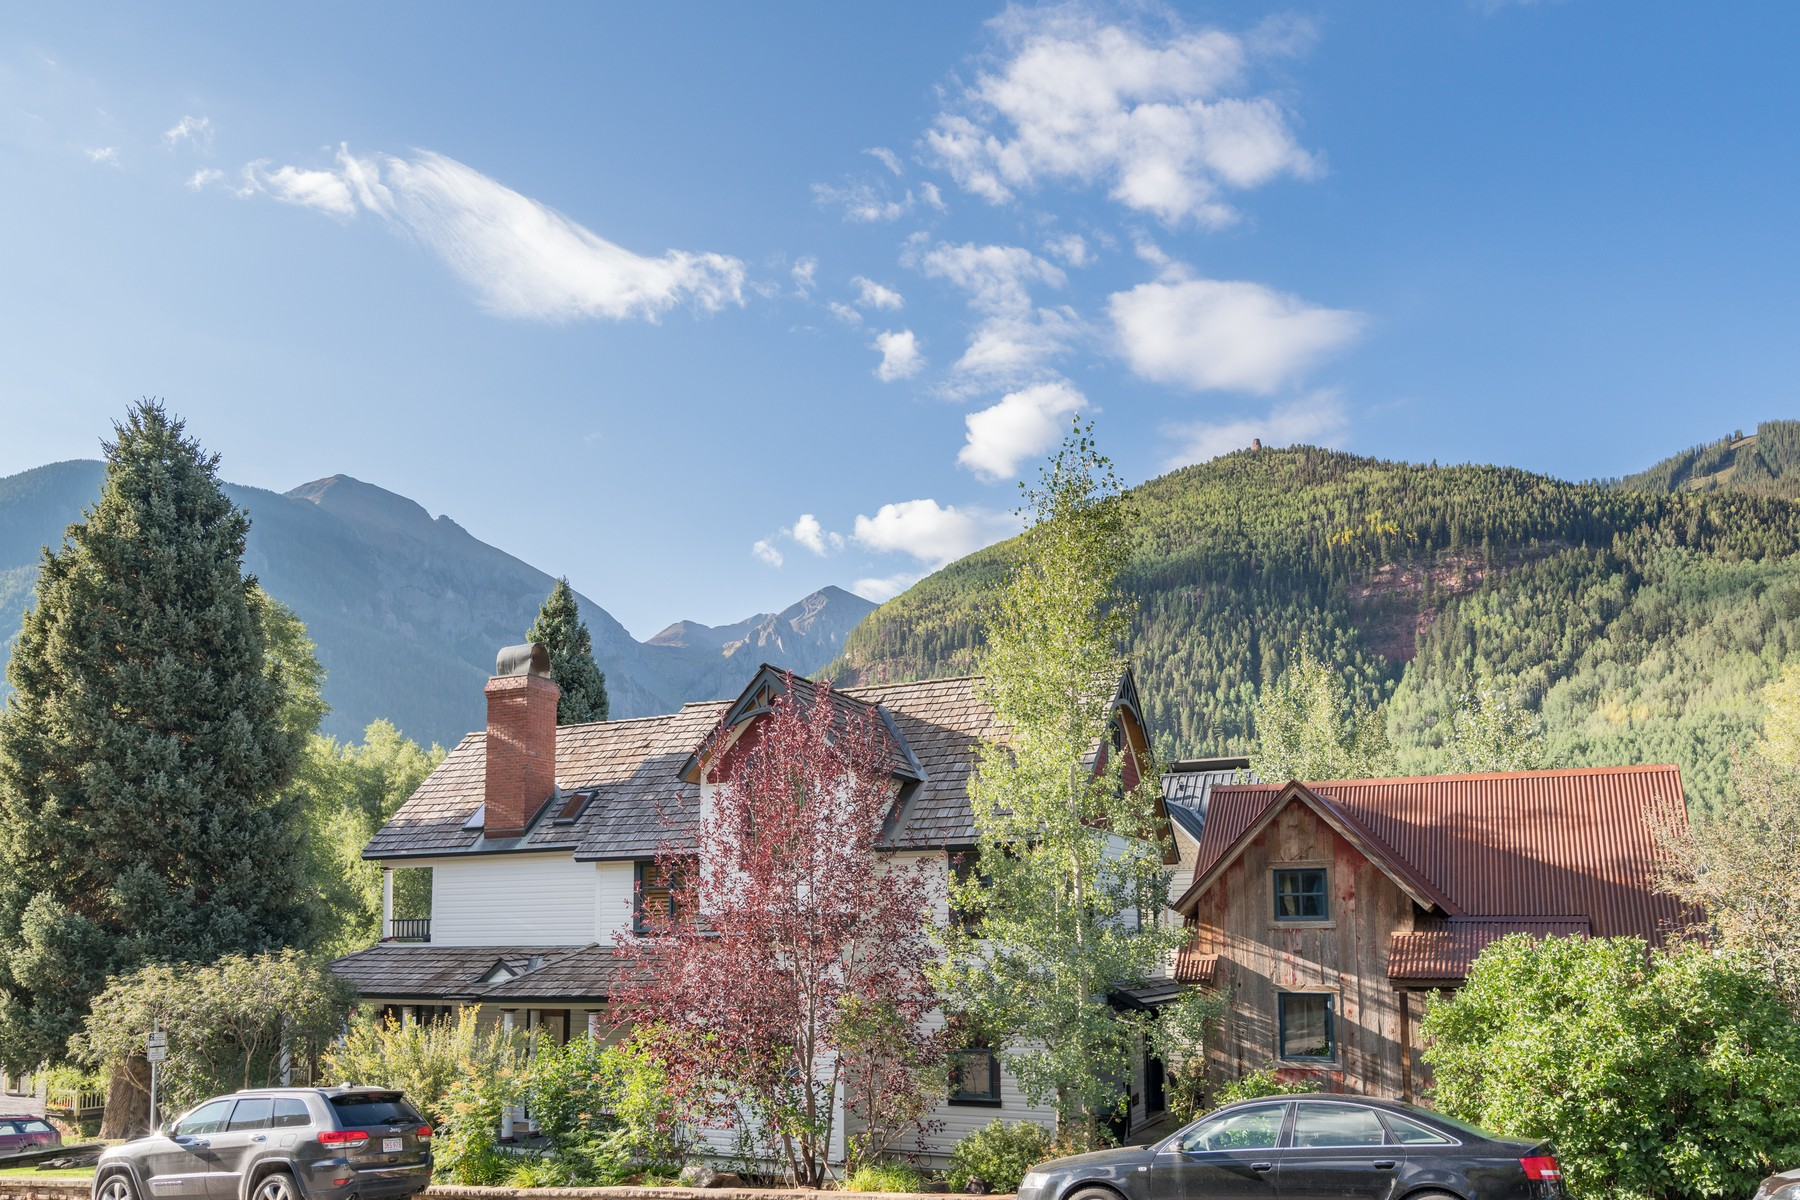 Single Family Home for Active at 239 North Fir Street 239 North Fir Street Telluride, Colorado 81435 United States